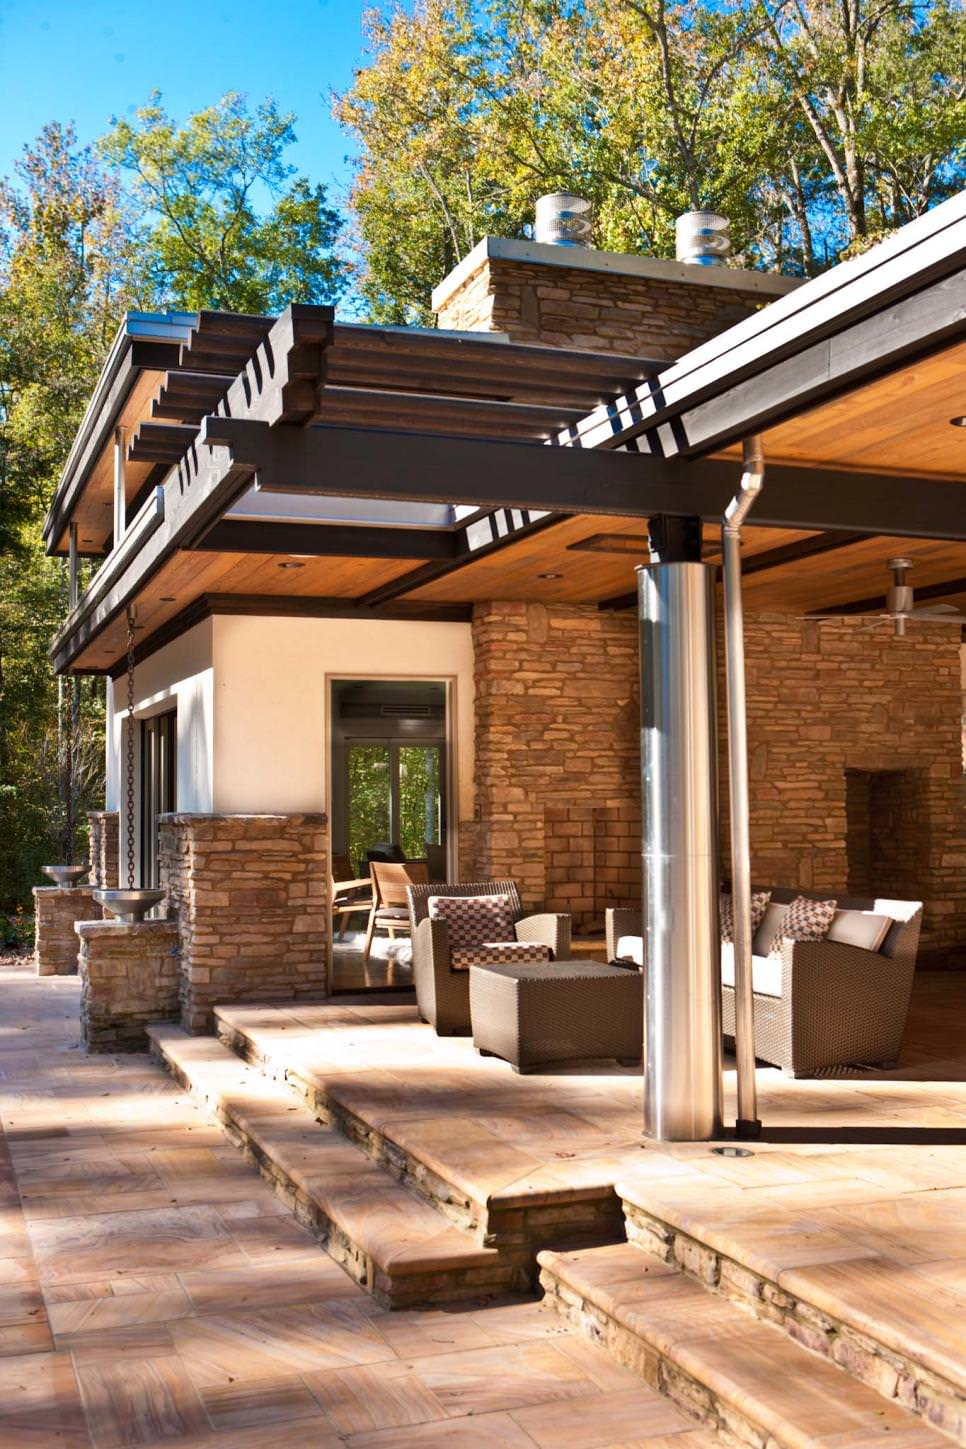 24+ Patio Roof Designs, Ideas, Plans.   Design Trends ... on Roof For Patio Ideas id=53781